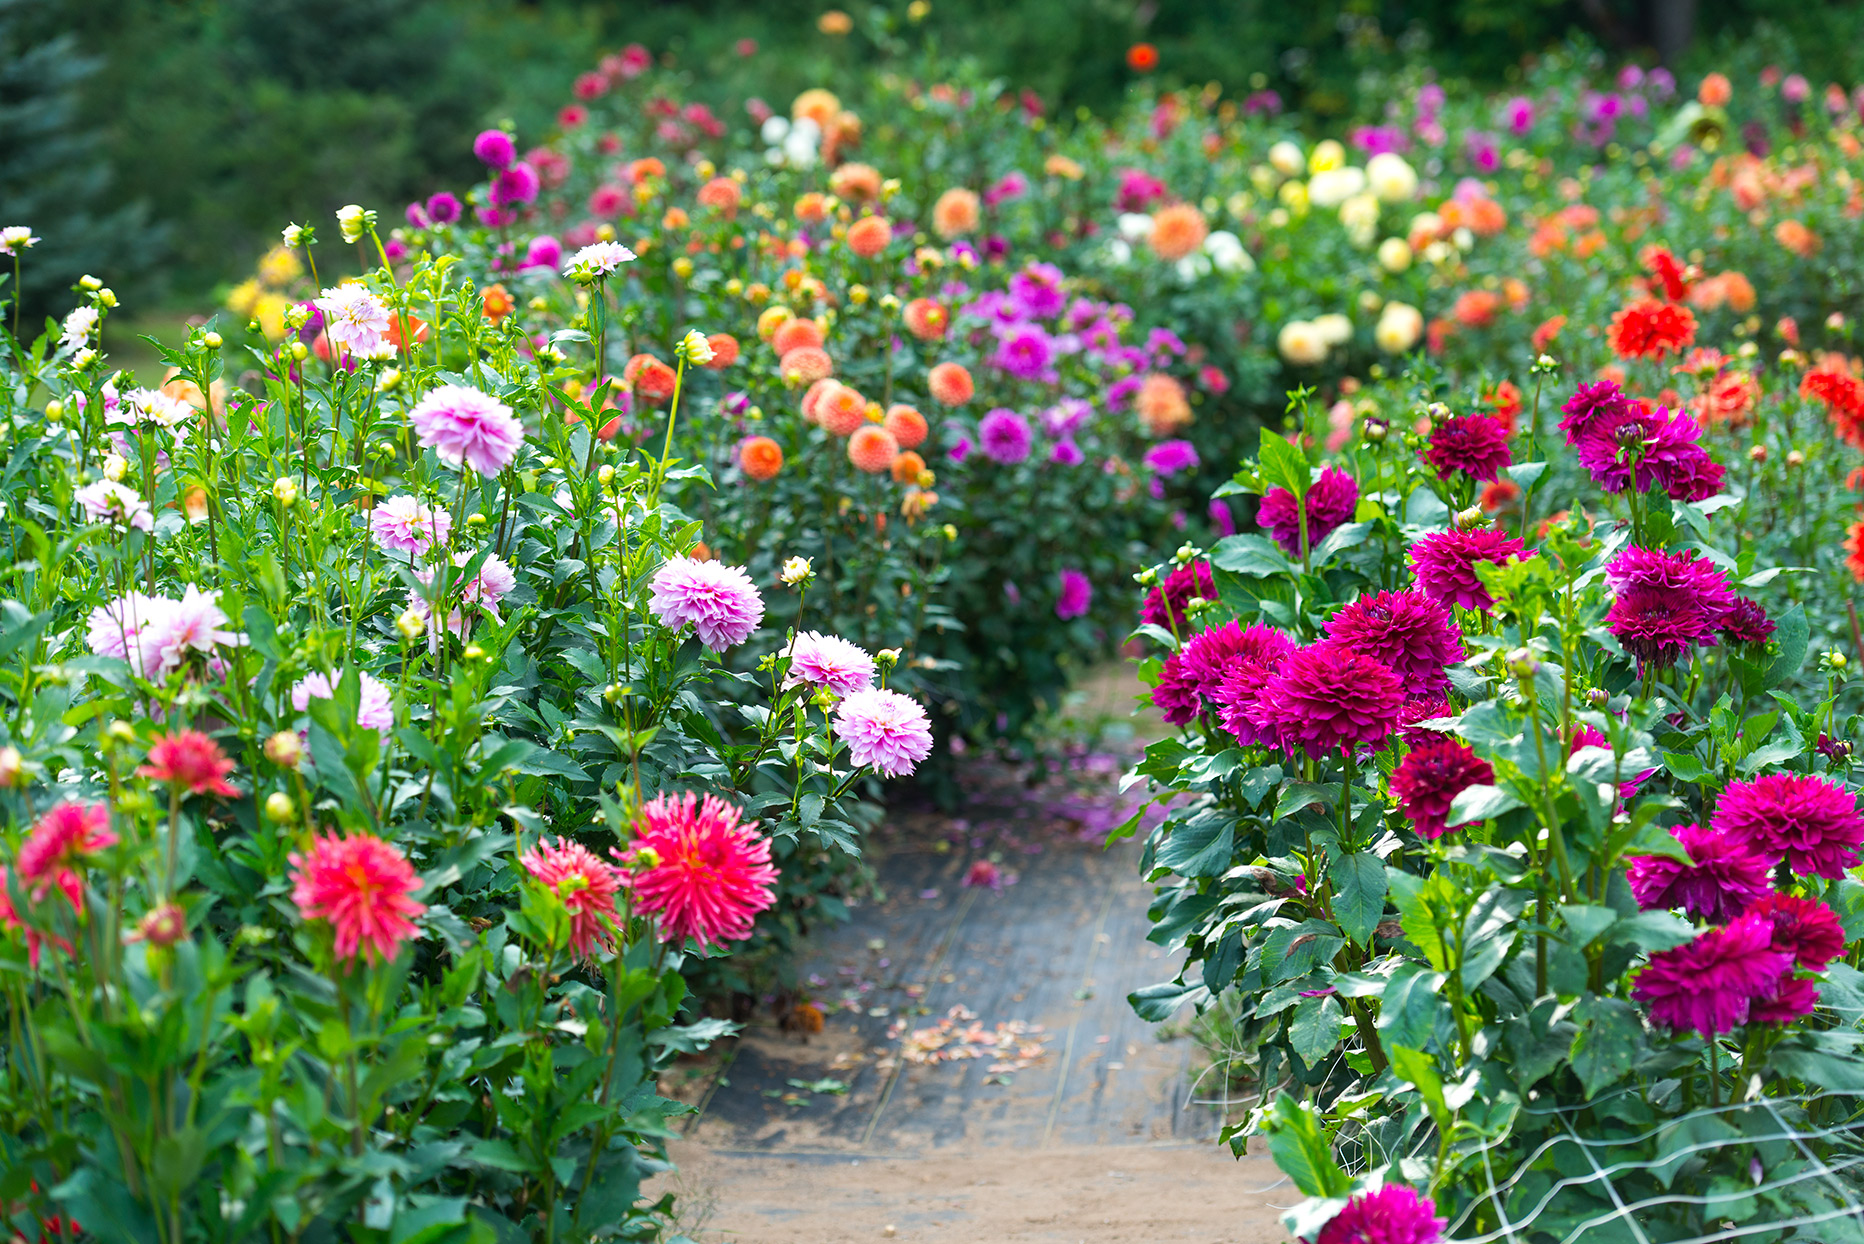 garden full of dahlia flowers in a variety of colors